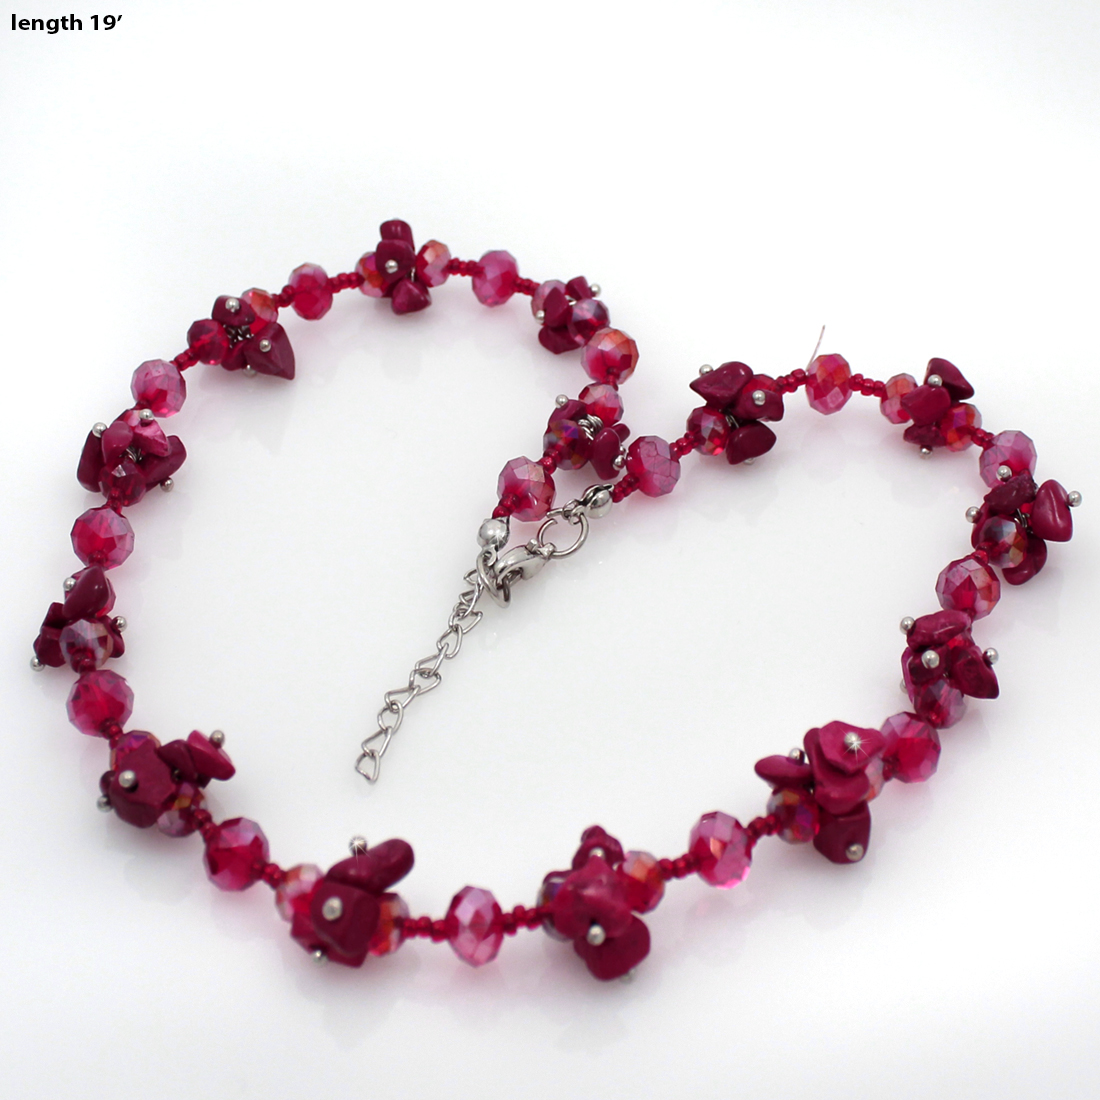 NKL02-RED - NKL02-RED WHOLESALE GENUINE CRYSTAL AND GLASS NECKLACE SET